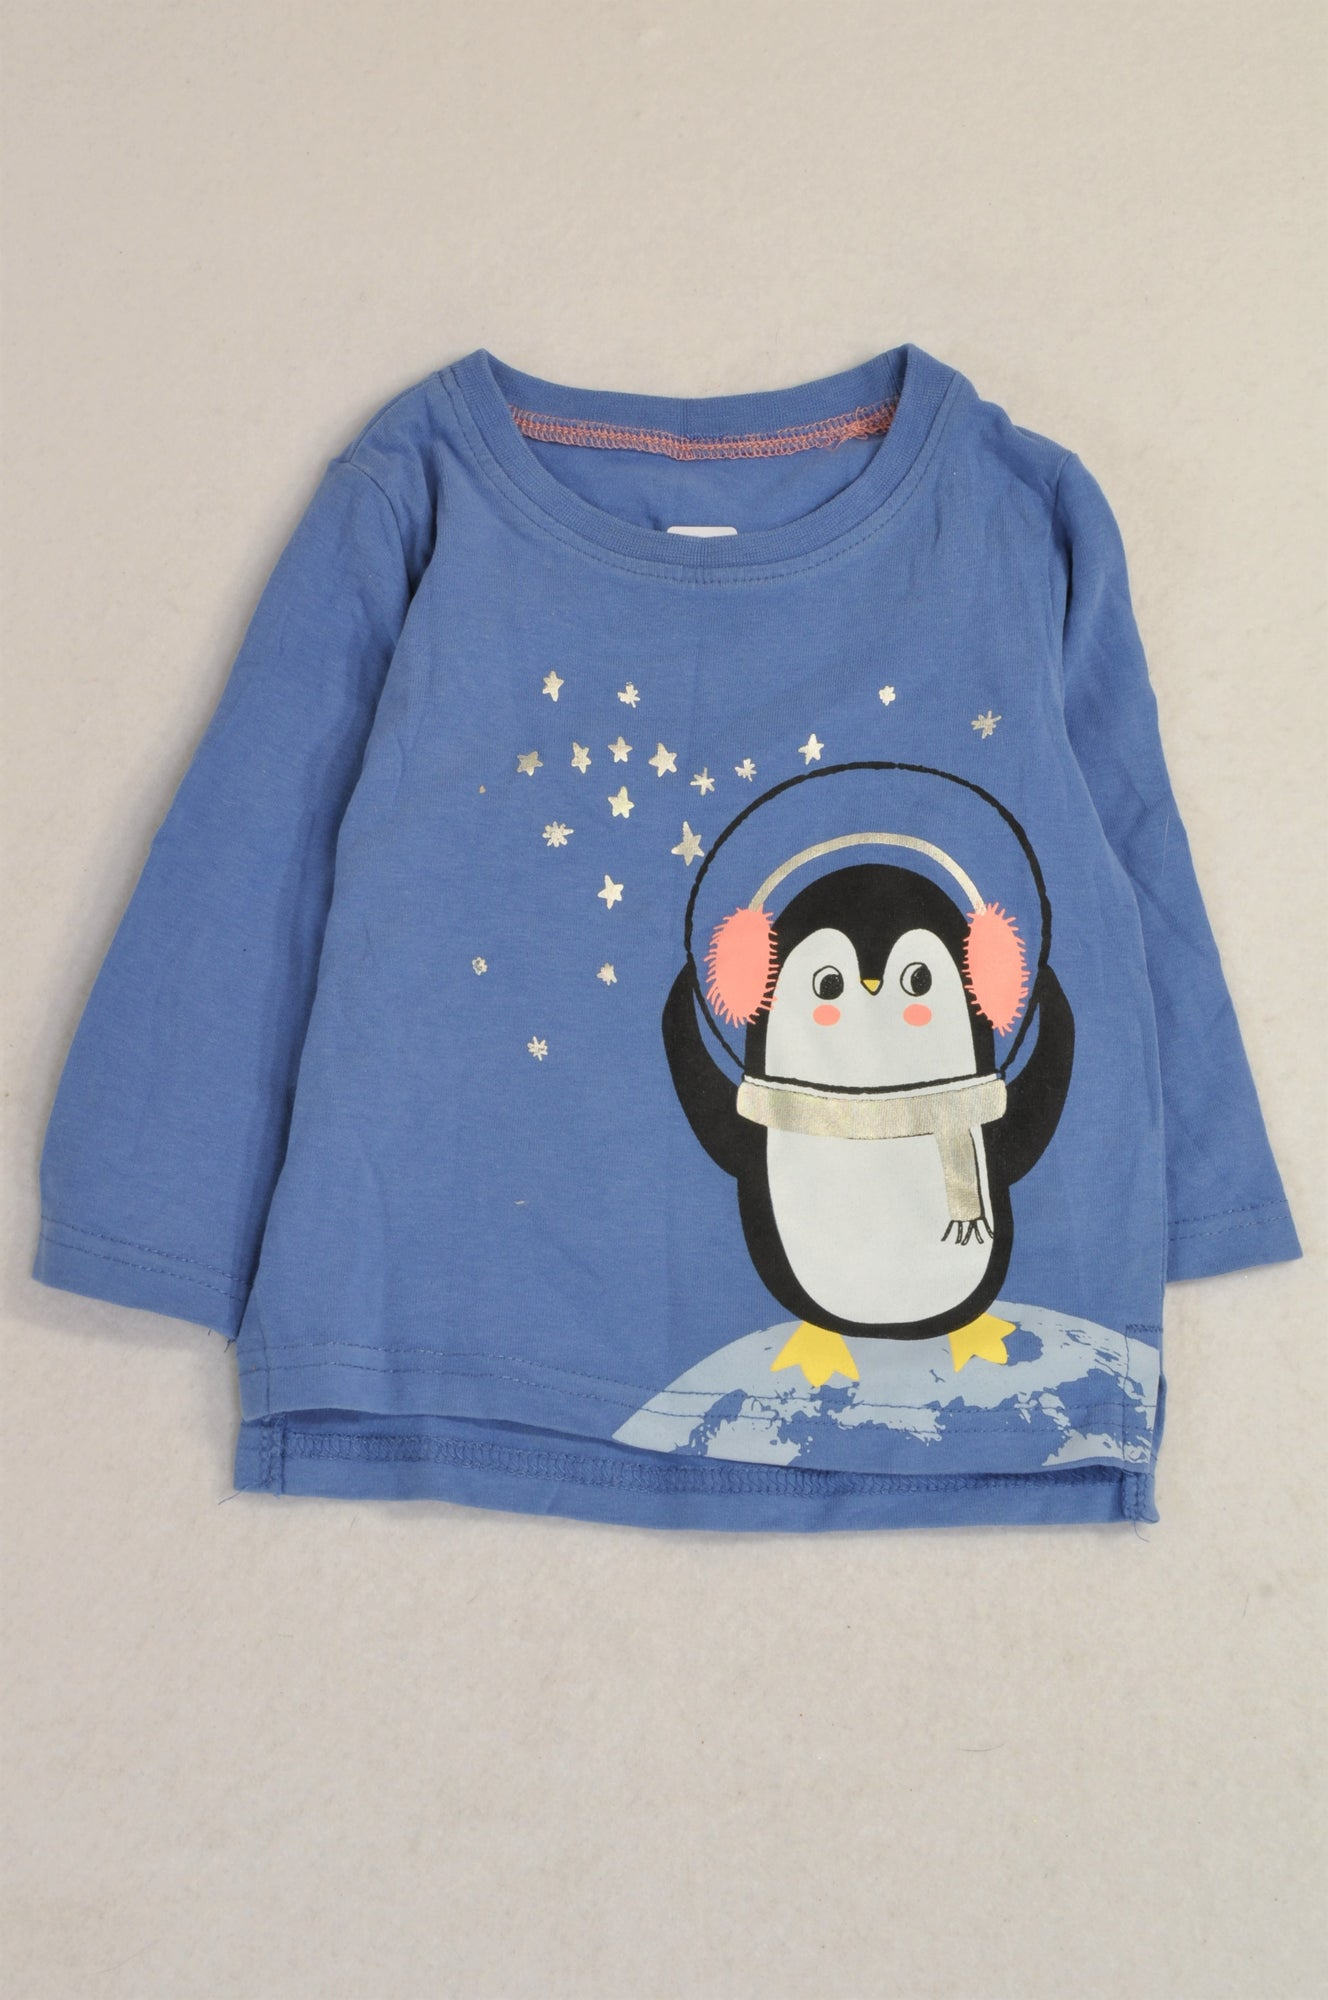 Woolworths Blue Star Penguin T-shirt Girls 3-6 months